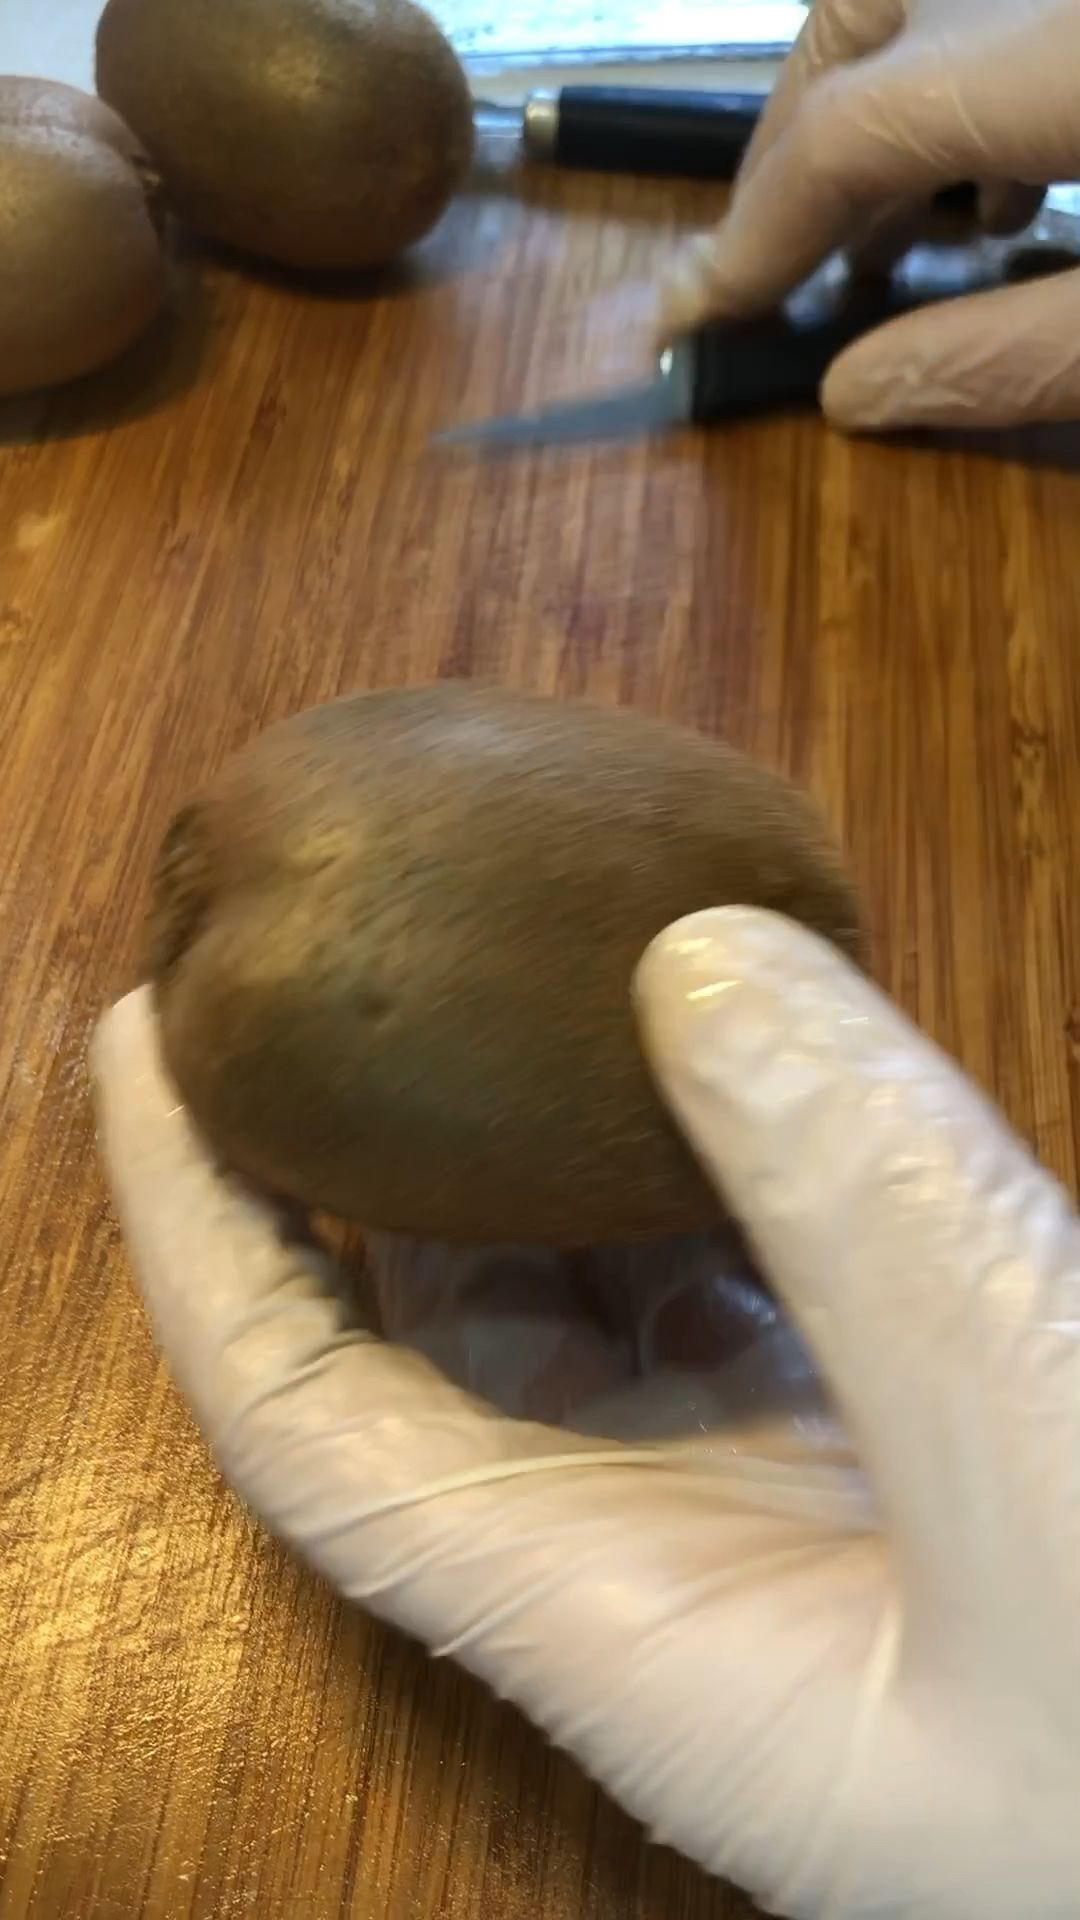 Carving a flower from a kiwi